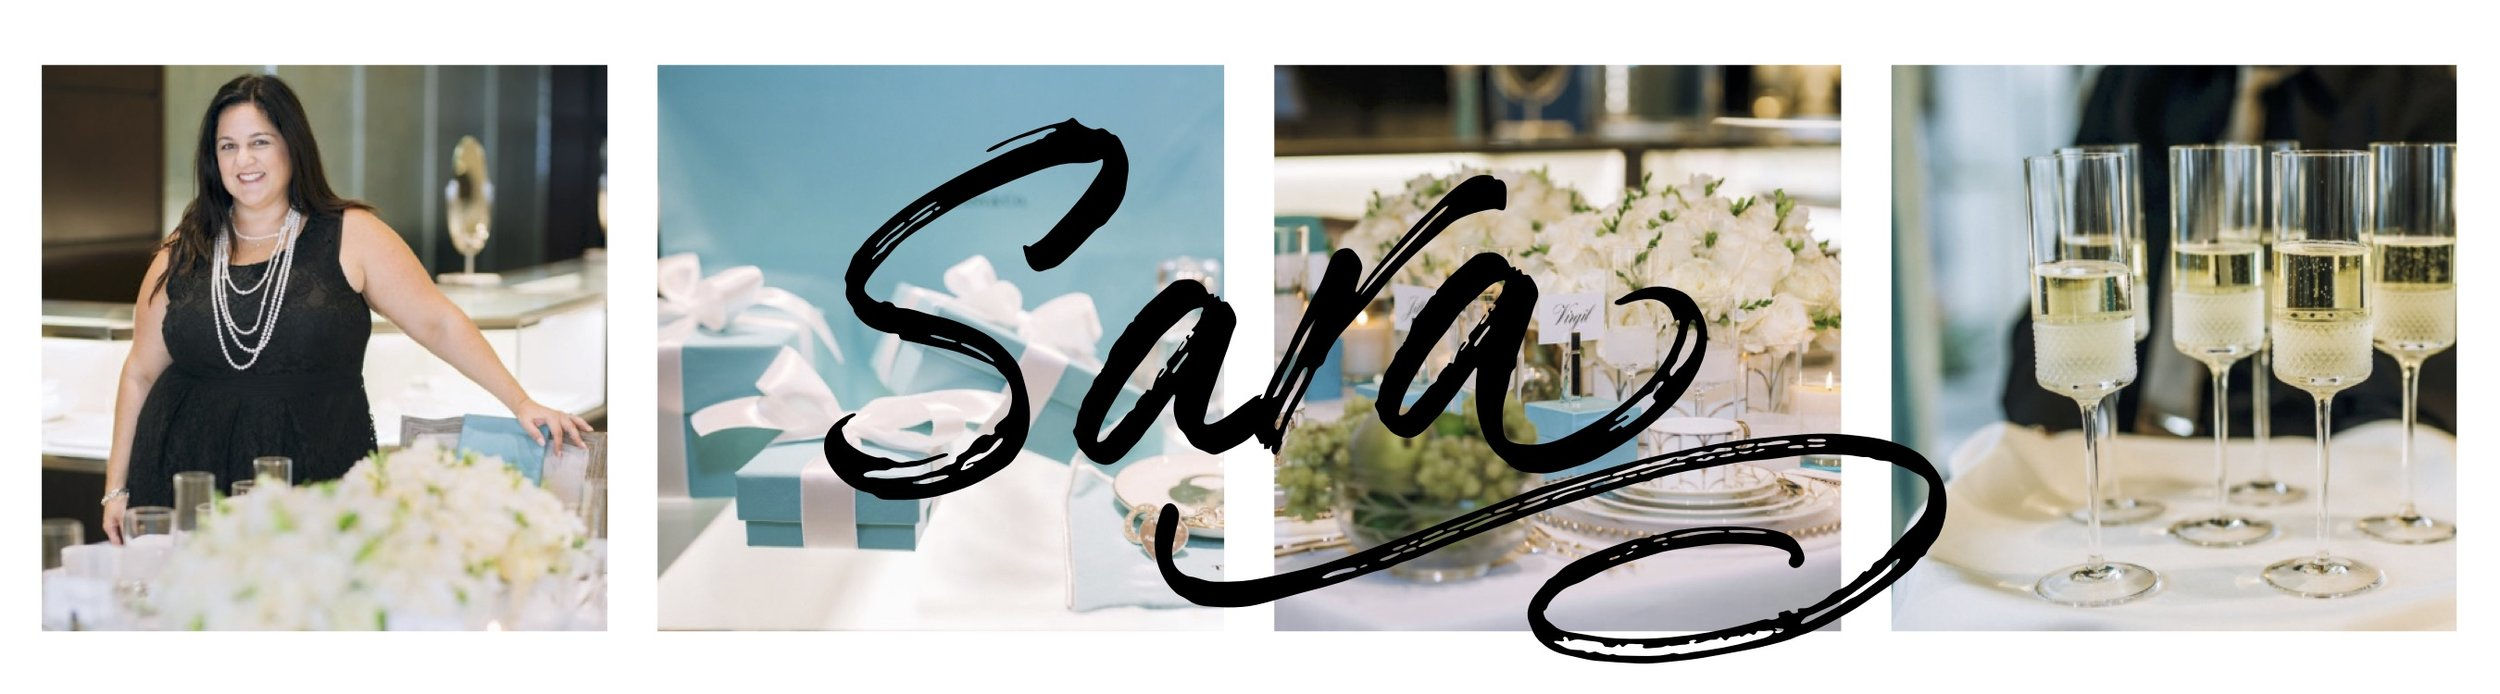 Wedding Planner Nashville Sara Fried.jpg